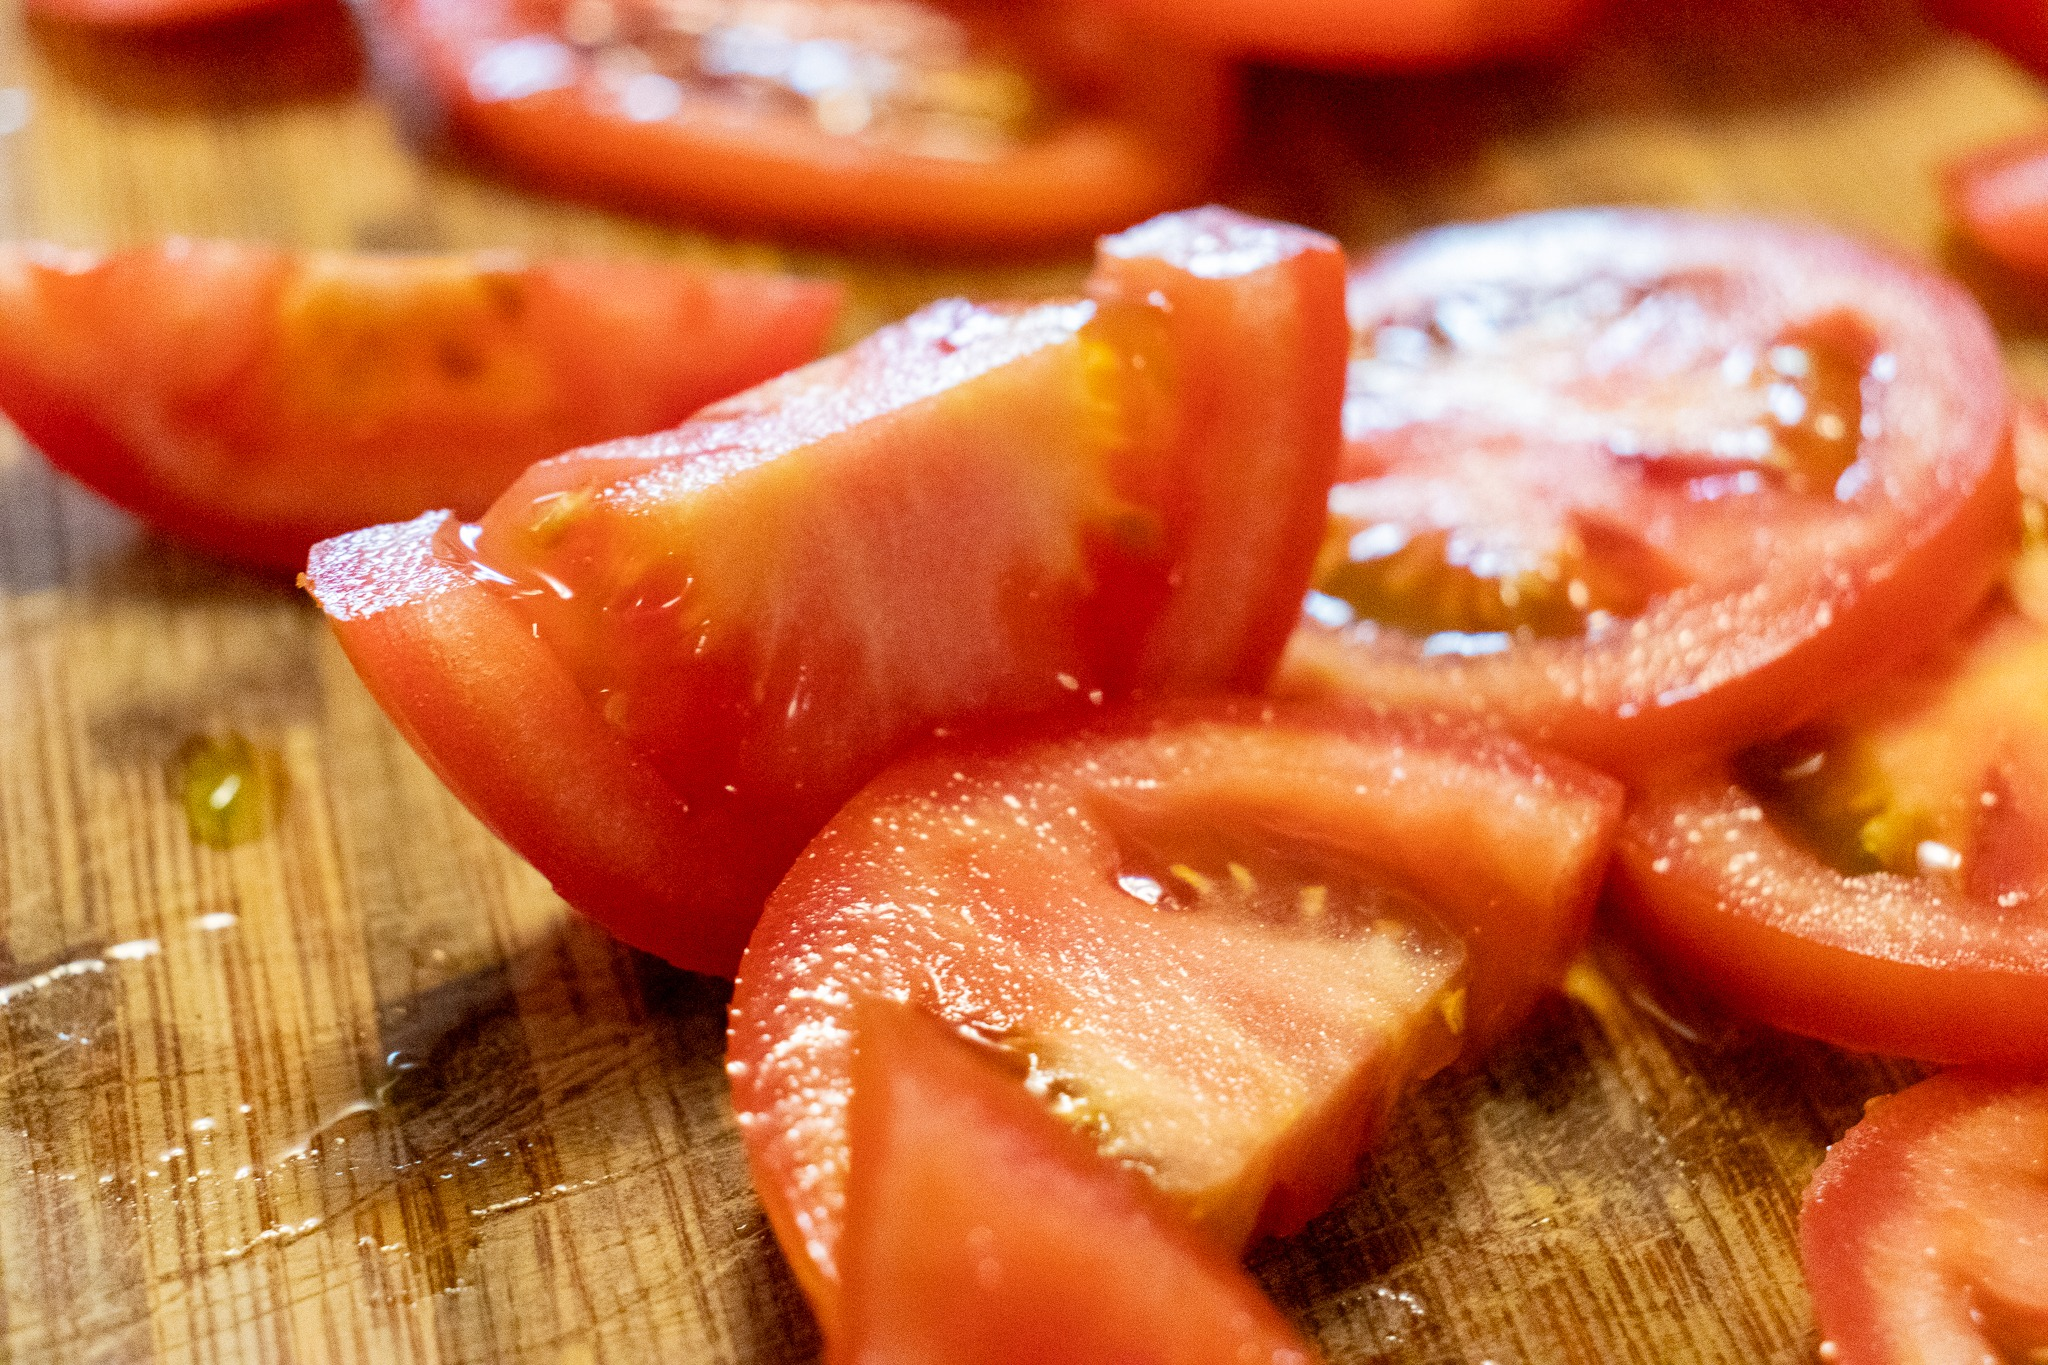 Tomatoes cut into bite-sized pieces